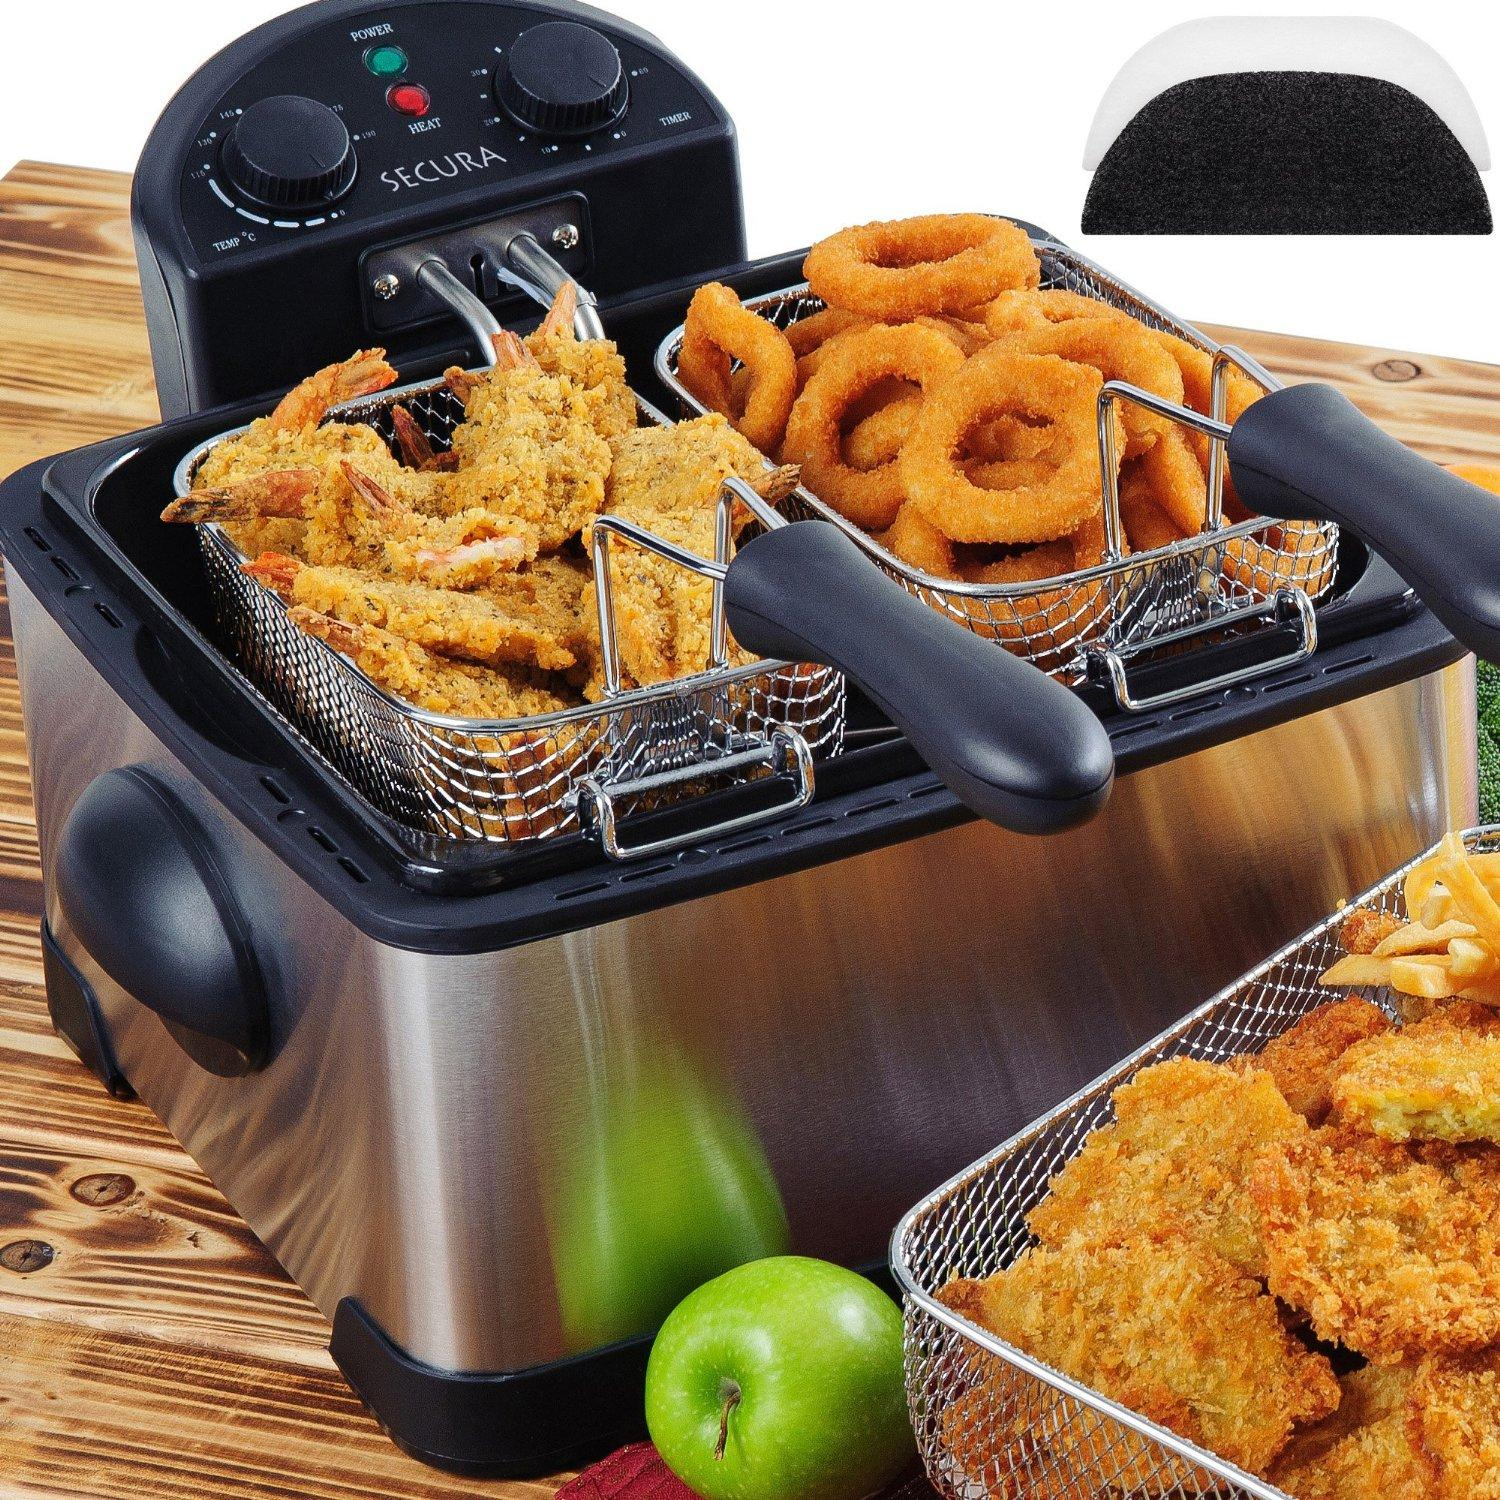 Secura 4.2L/17-Cup 1700-Watt Stainless-Steel Triple-Basket Electric Deep Fryer